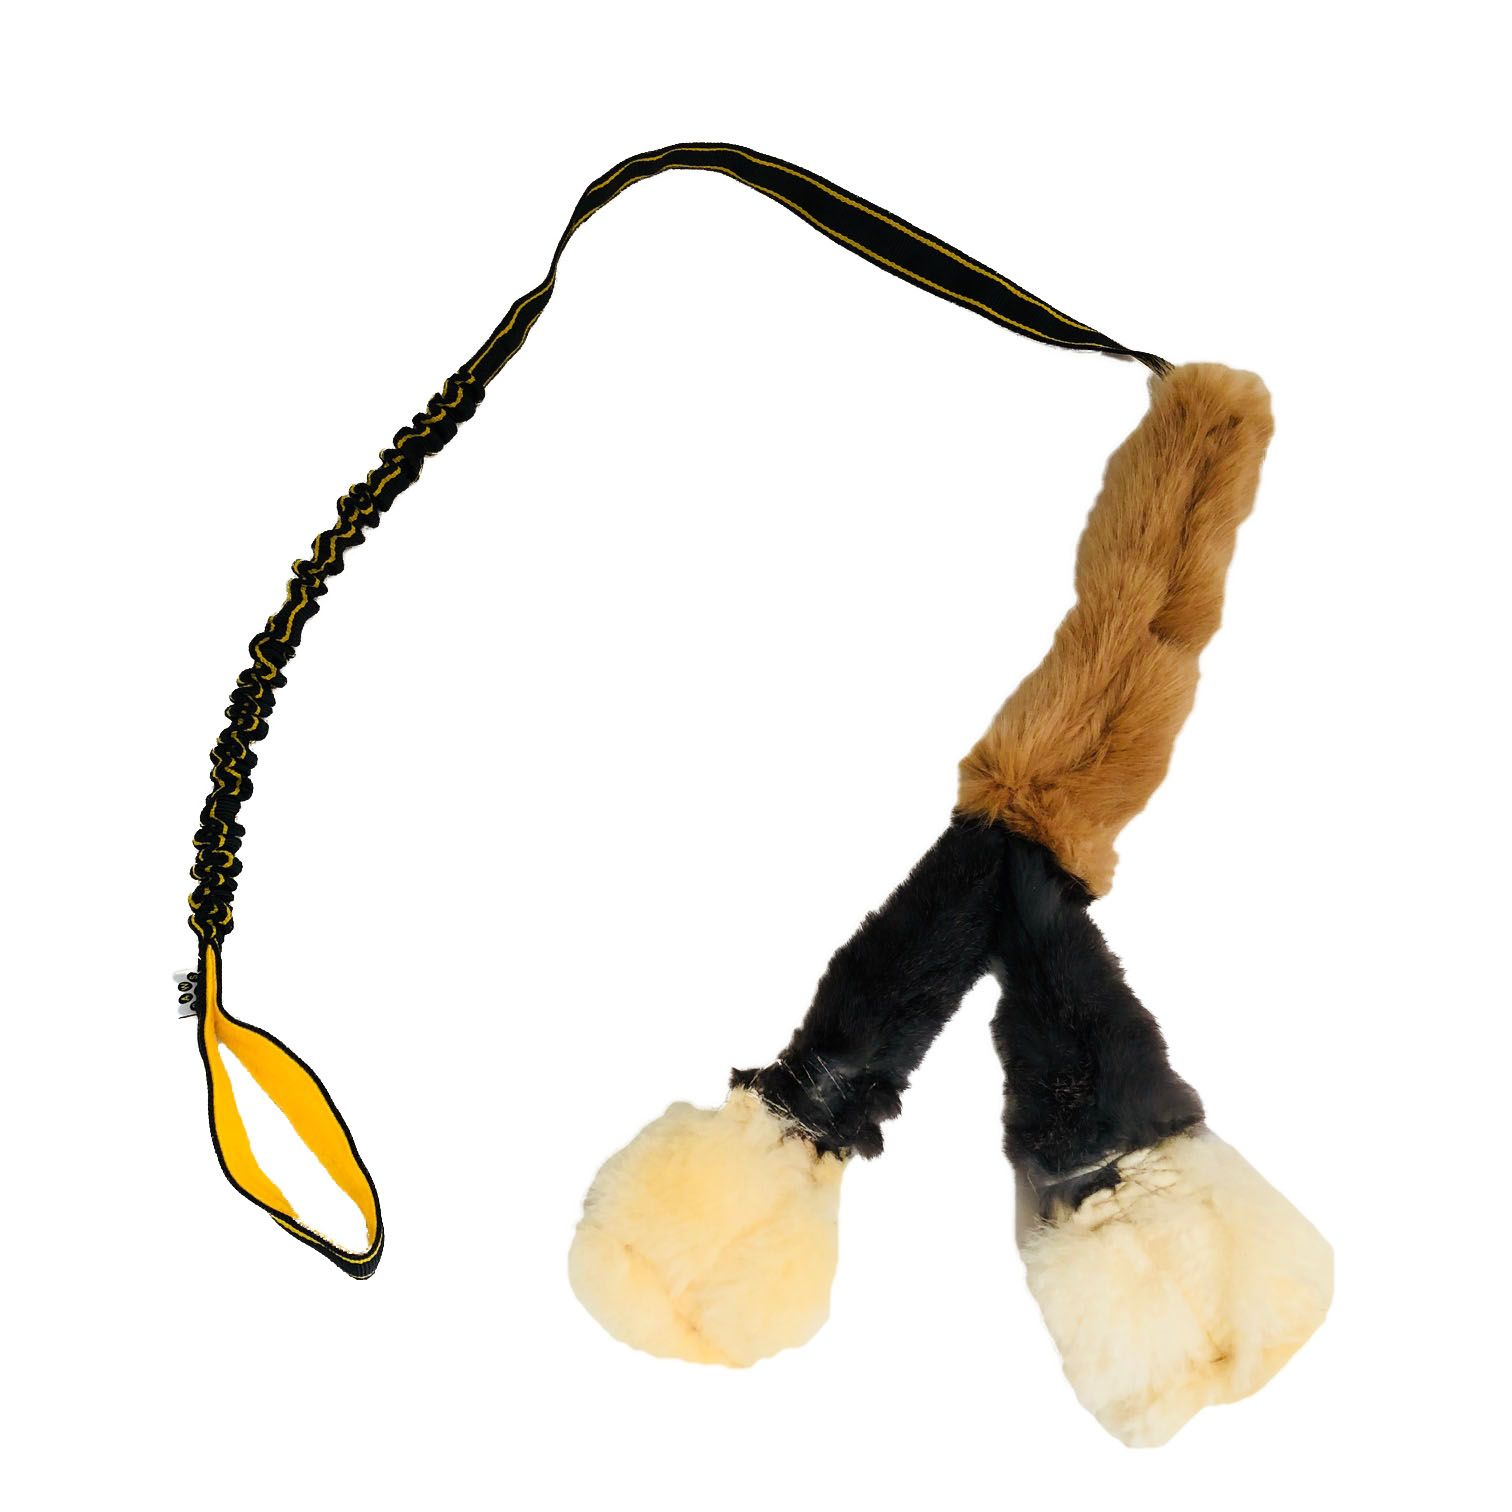 Paws Made The Waggle! Squeaker Extra long bungee Sheep Rabbit /& Faux Dog Training Toy